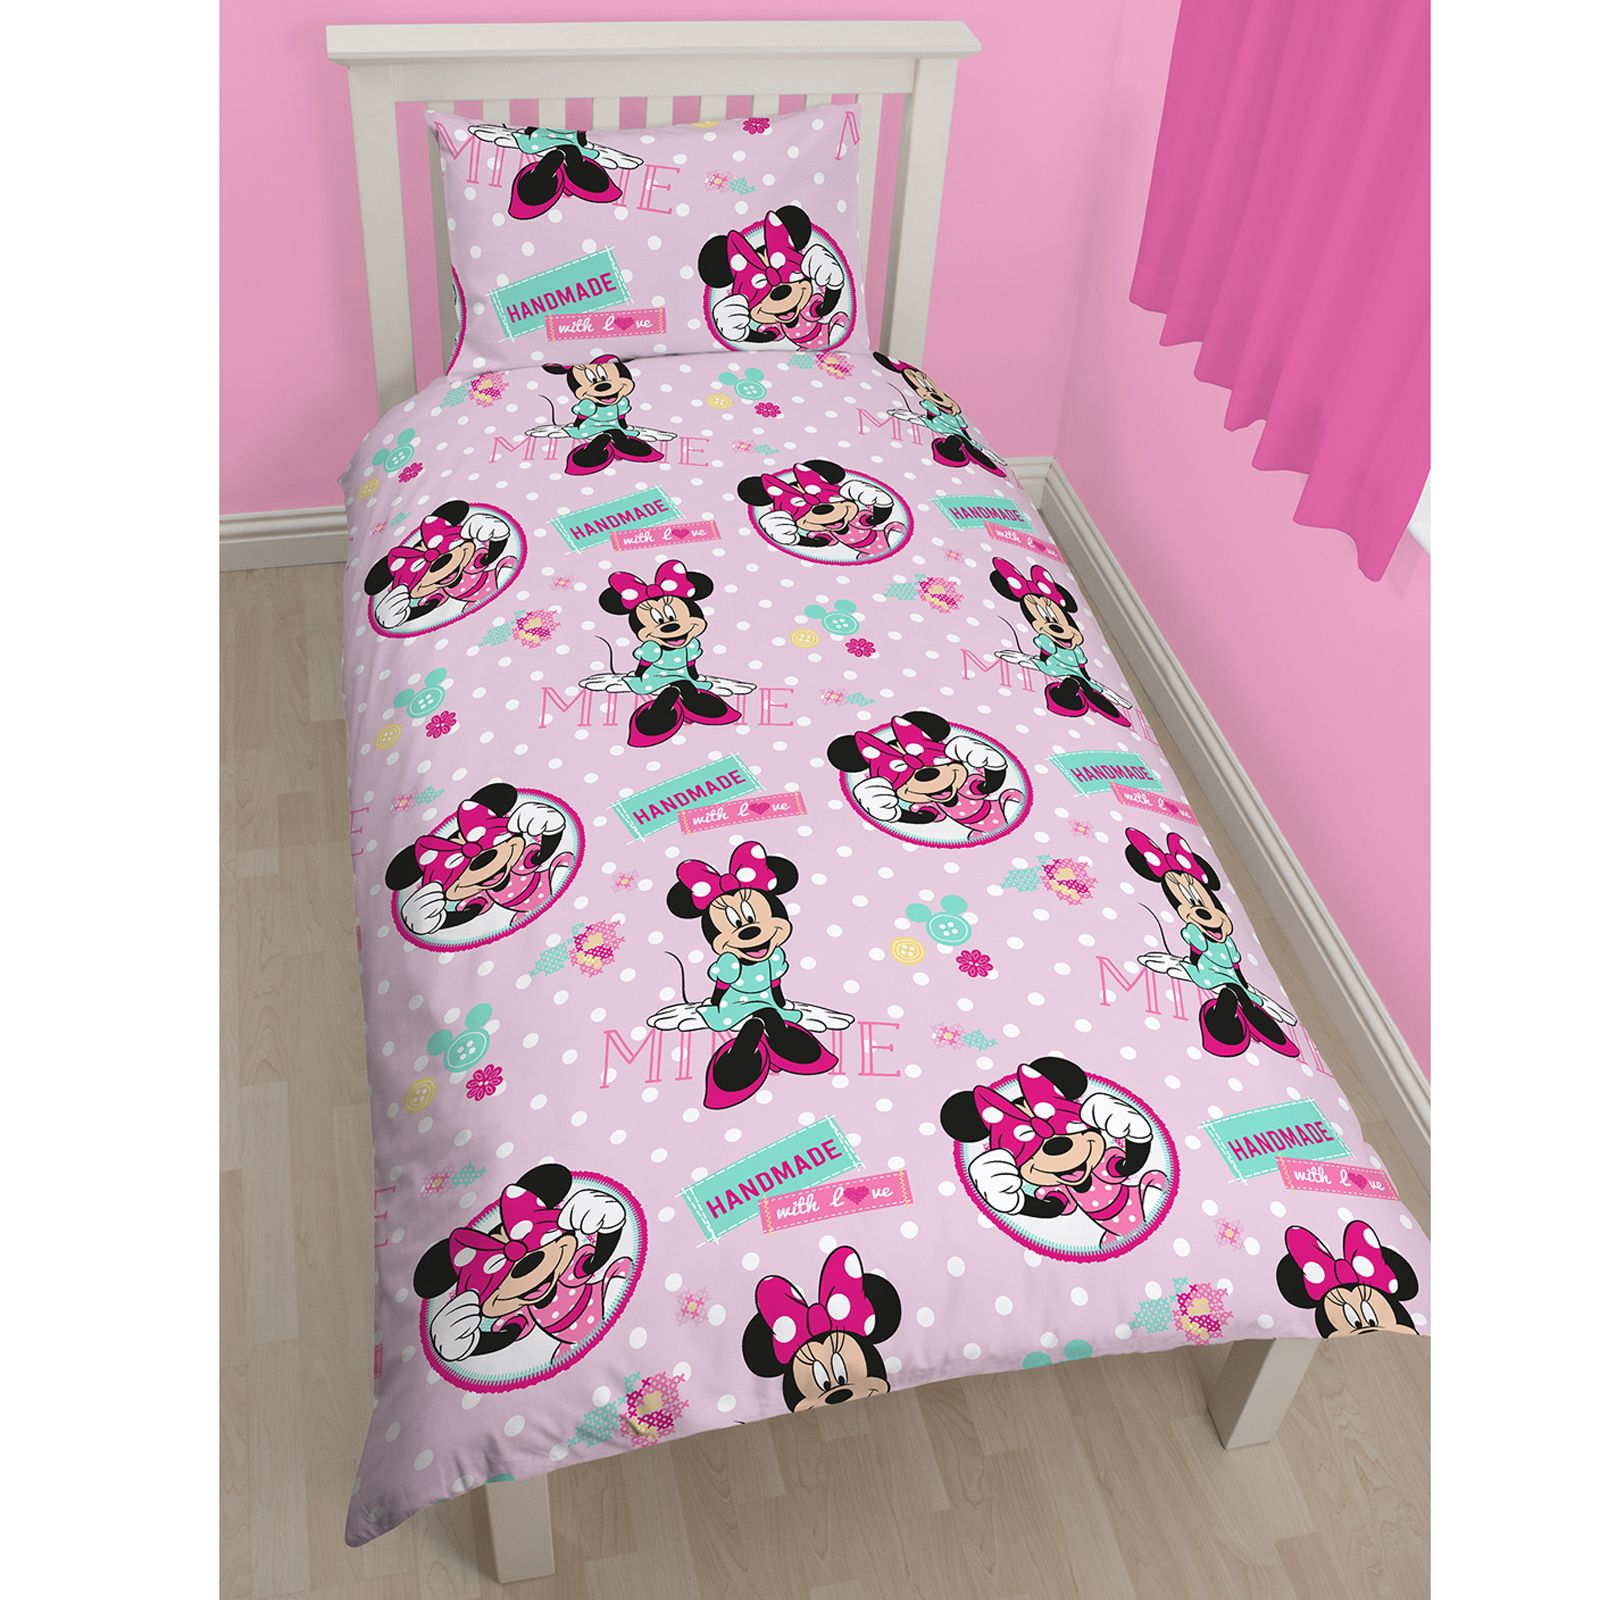 minnie mouse kreuzstich einzelne wendbare bettw sche schlafzimmer neu ebay. Black Bedroom Furniture Sets. Home Design Ideas